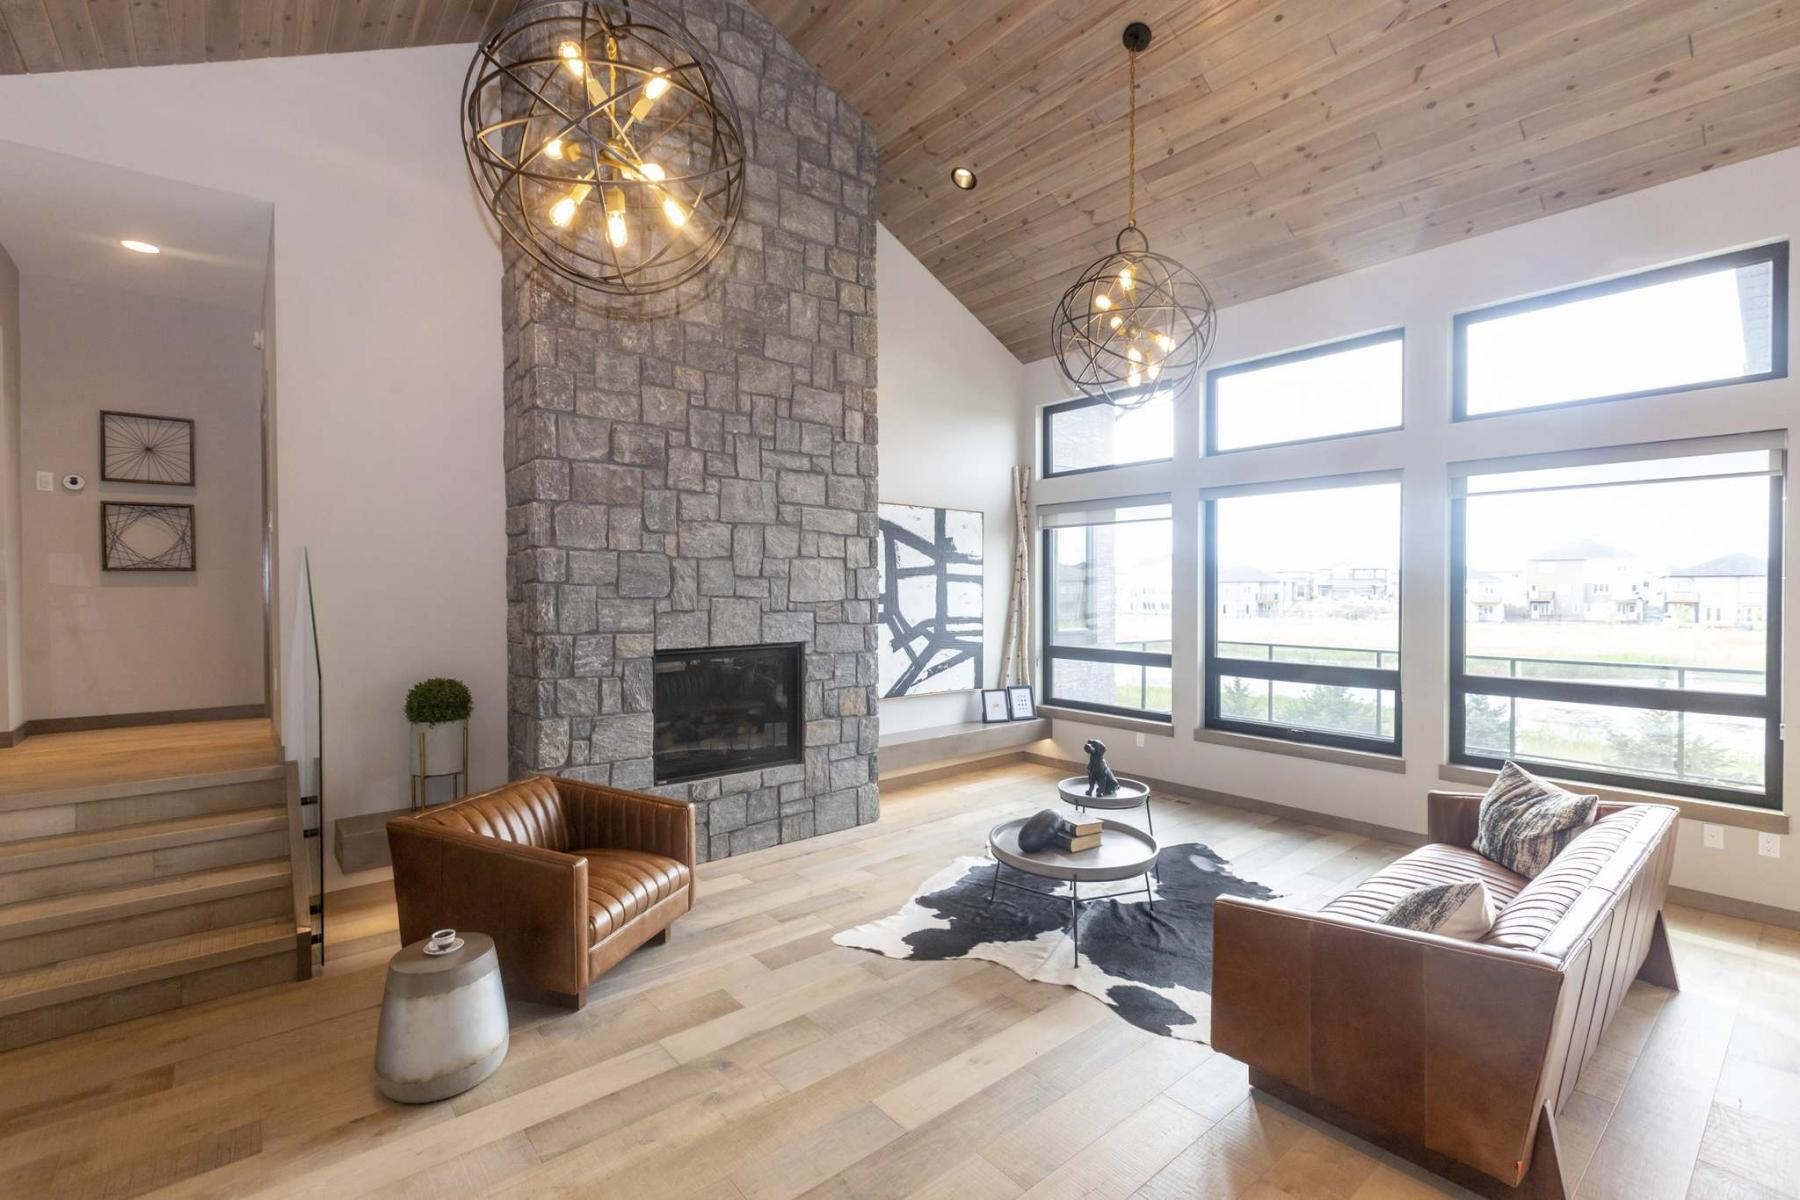 <p>SASHA SEFTER / WINNIPEG FREE PRESS</p><p>The great room at 352 Willow Creek Rd. is a voluminous space that evokes a genuine mountain lodge feel with its 16-foot vaulted ceiling, stone fireplace and large windows.</p></p>